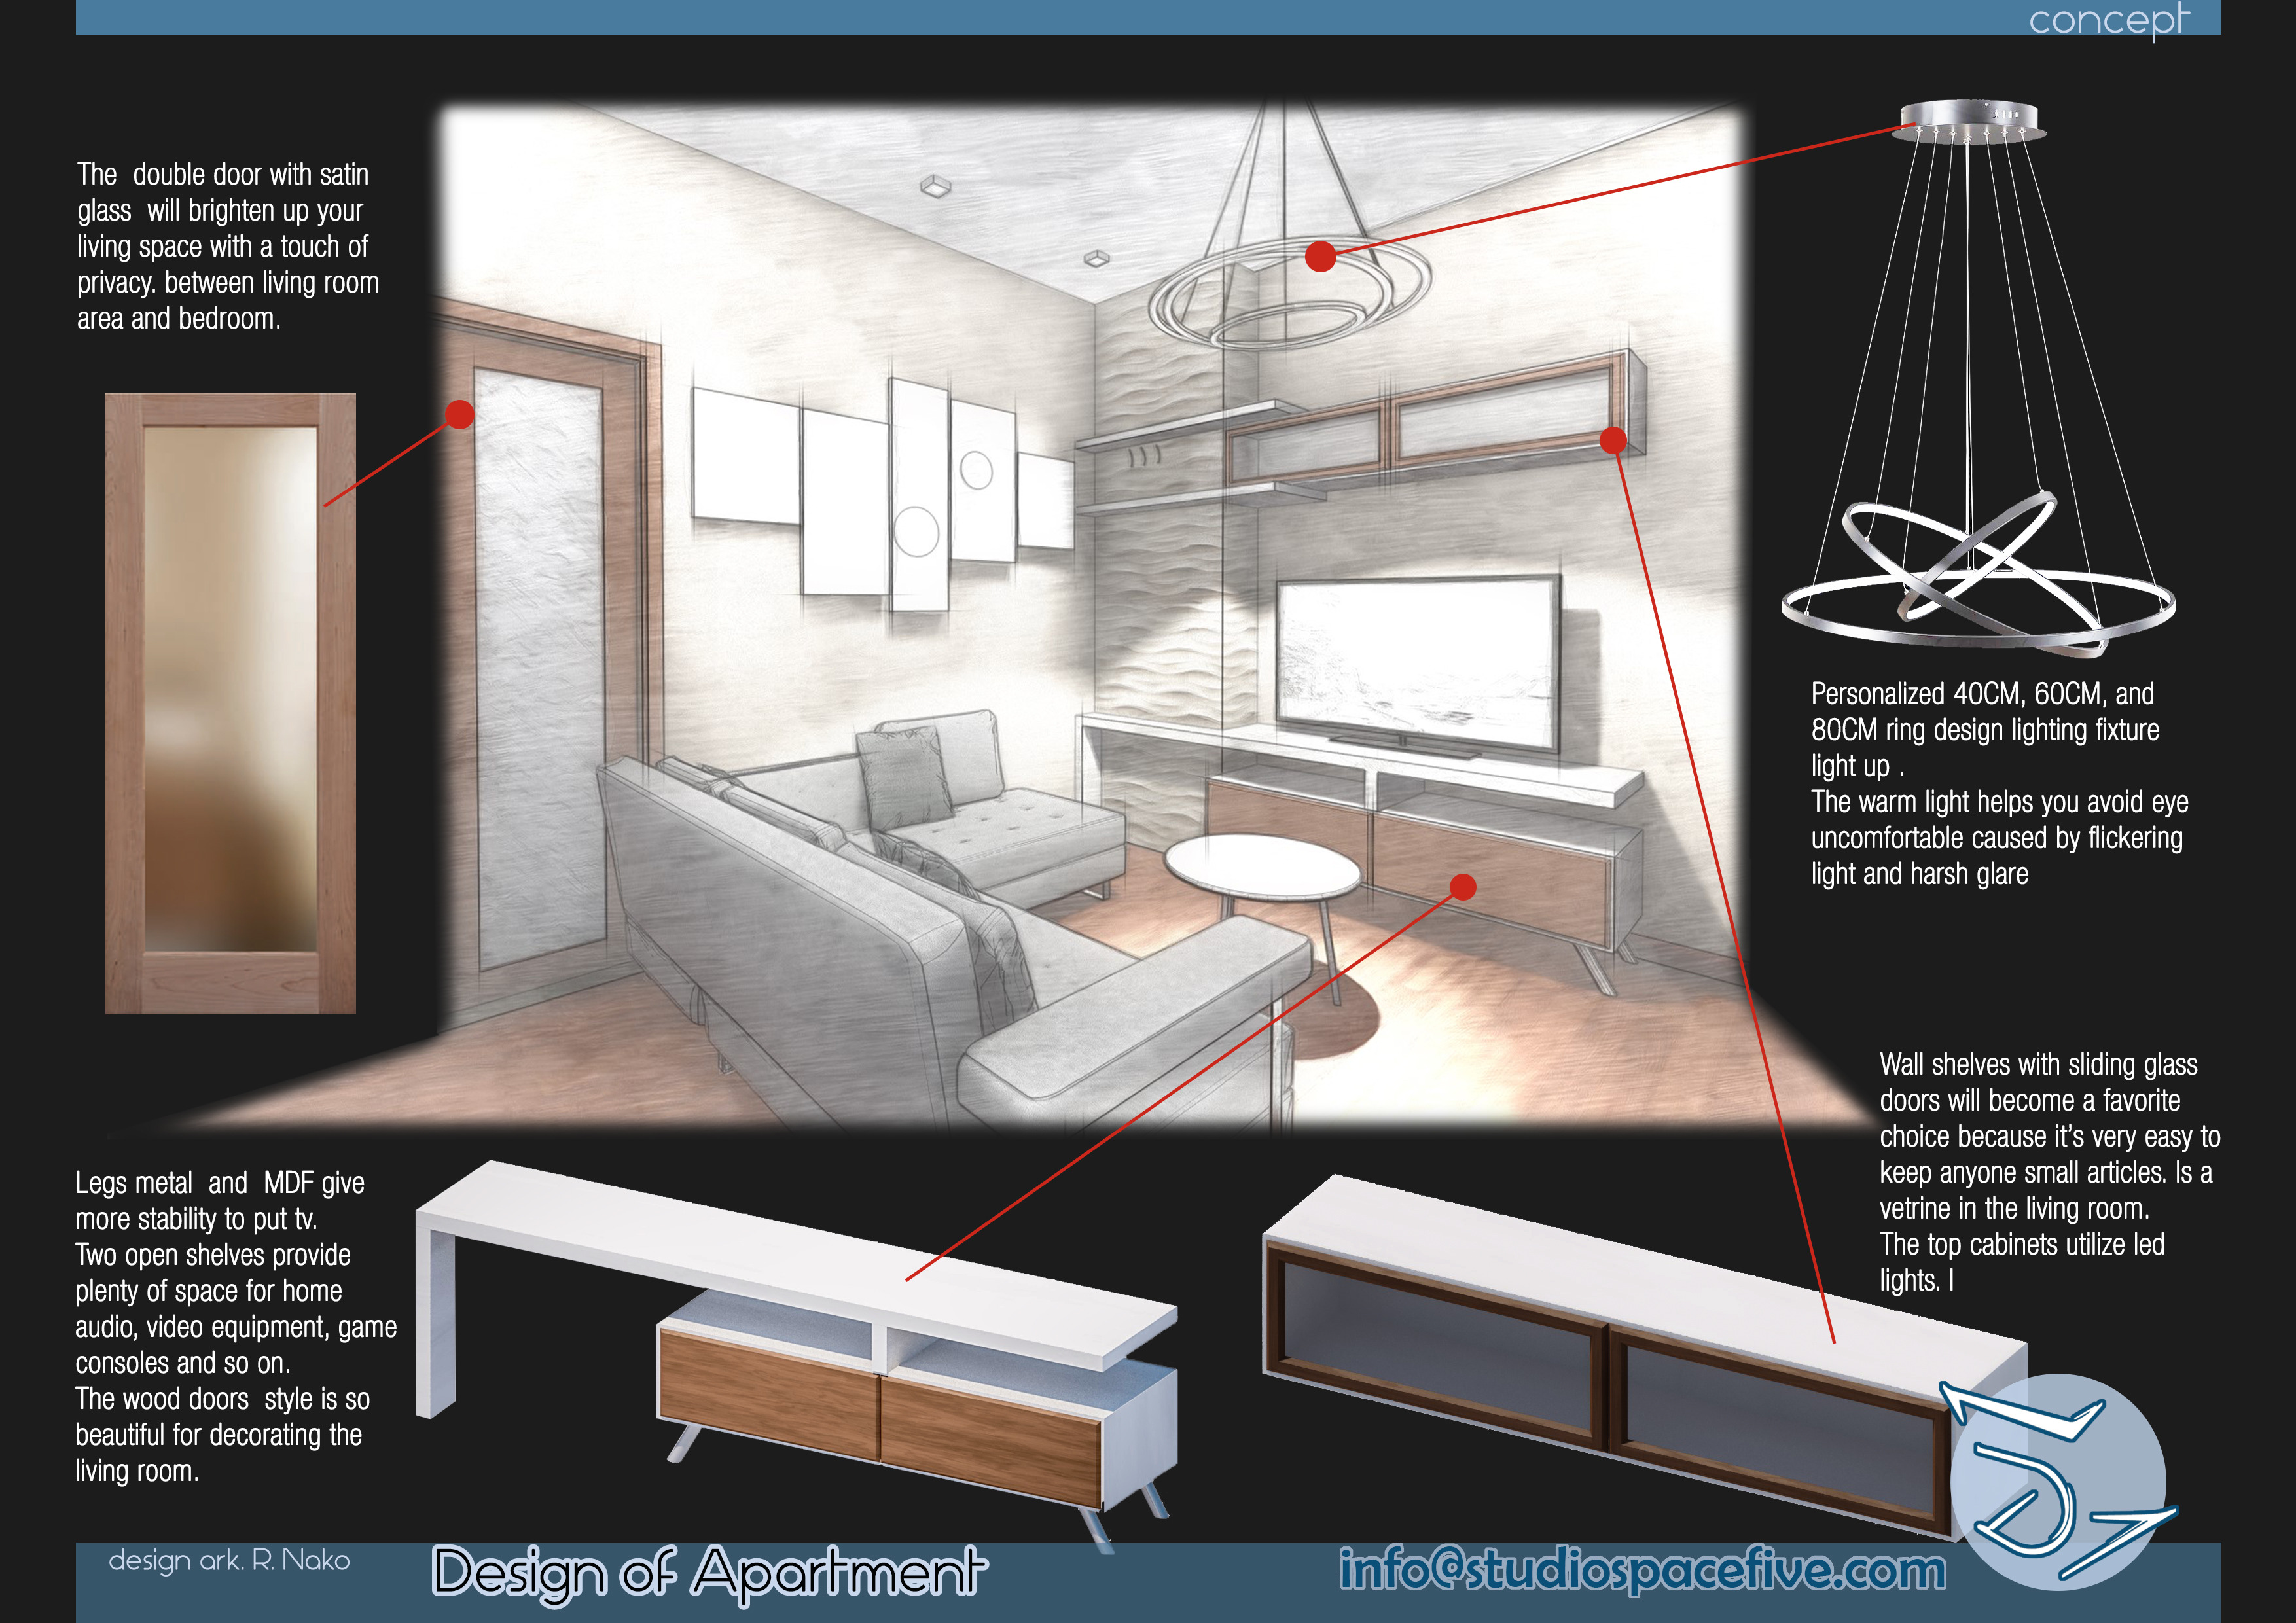 New concept of space to an existing apartment | Studio Space